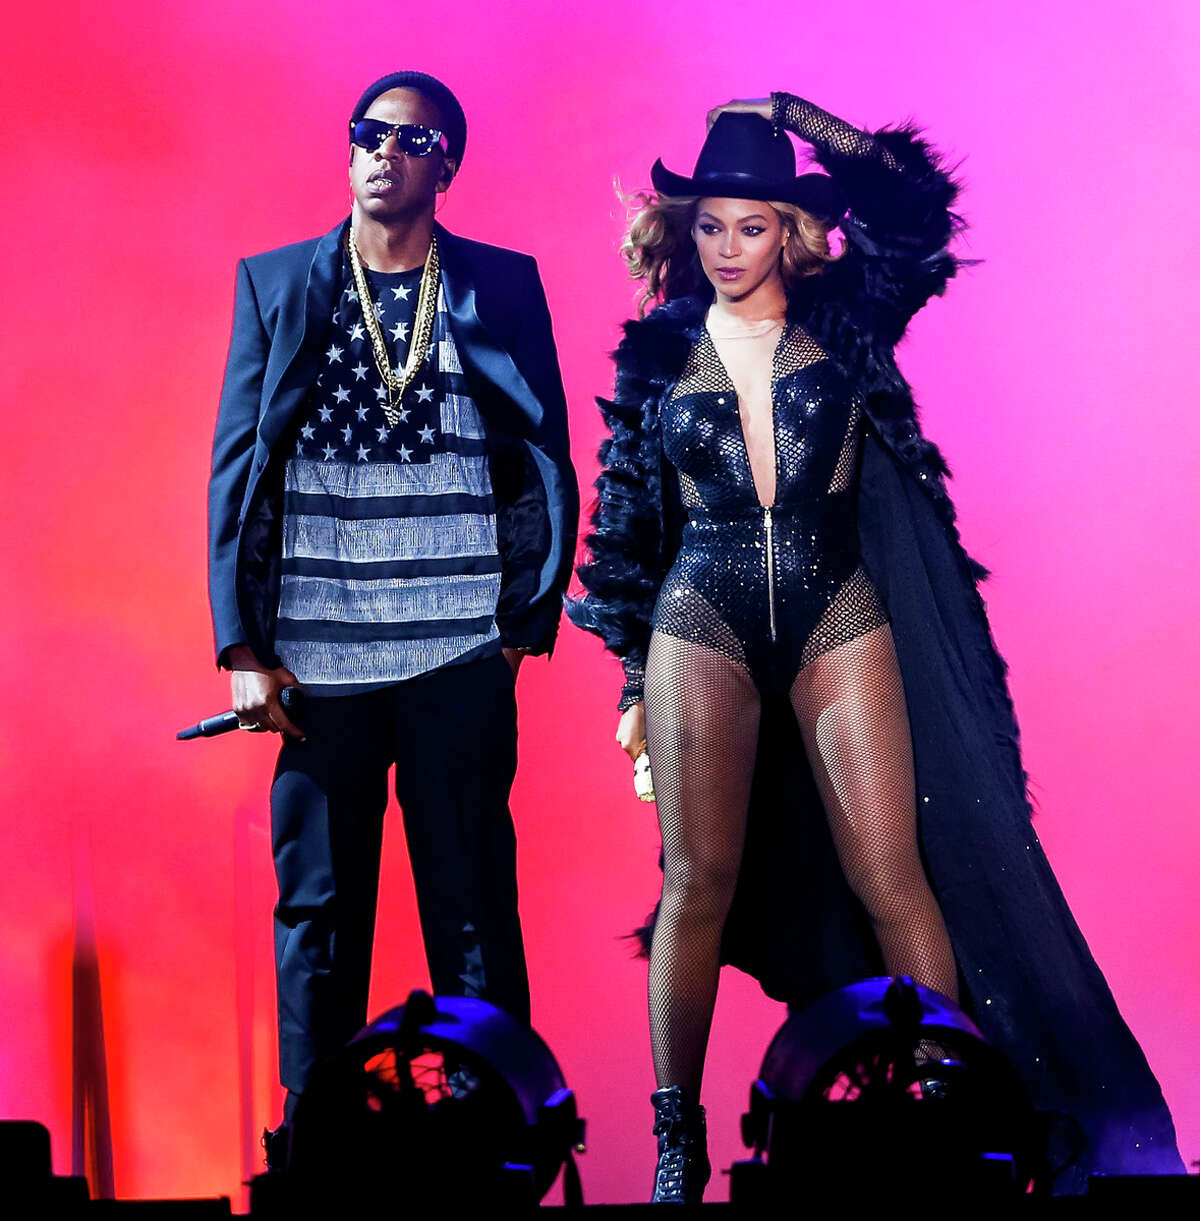 HOUSTON, TX - JULY 18: Beyonce and JAY Z perform on the On The Run Tour at the Minute Maid Park on Friday, July 18, 2014, in Houston, Texas. (Photo by Aaron M. Sprecher/PictureGroup).